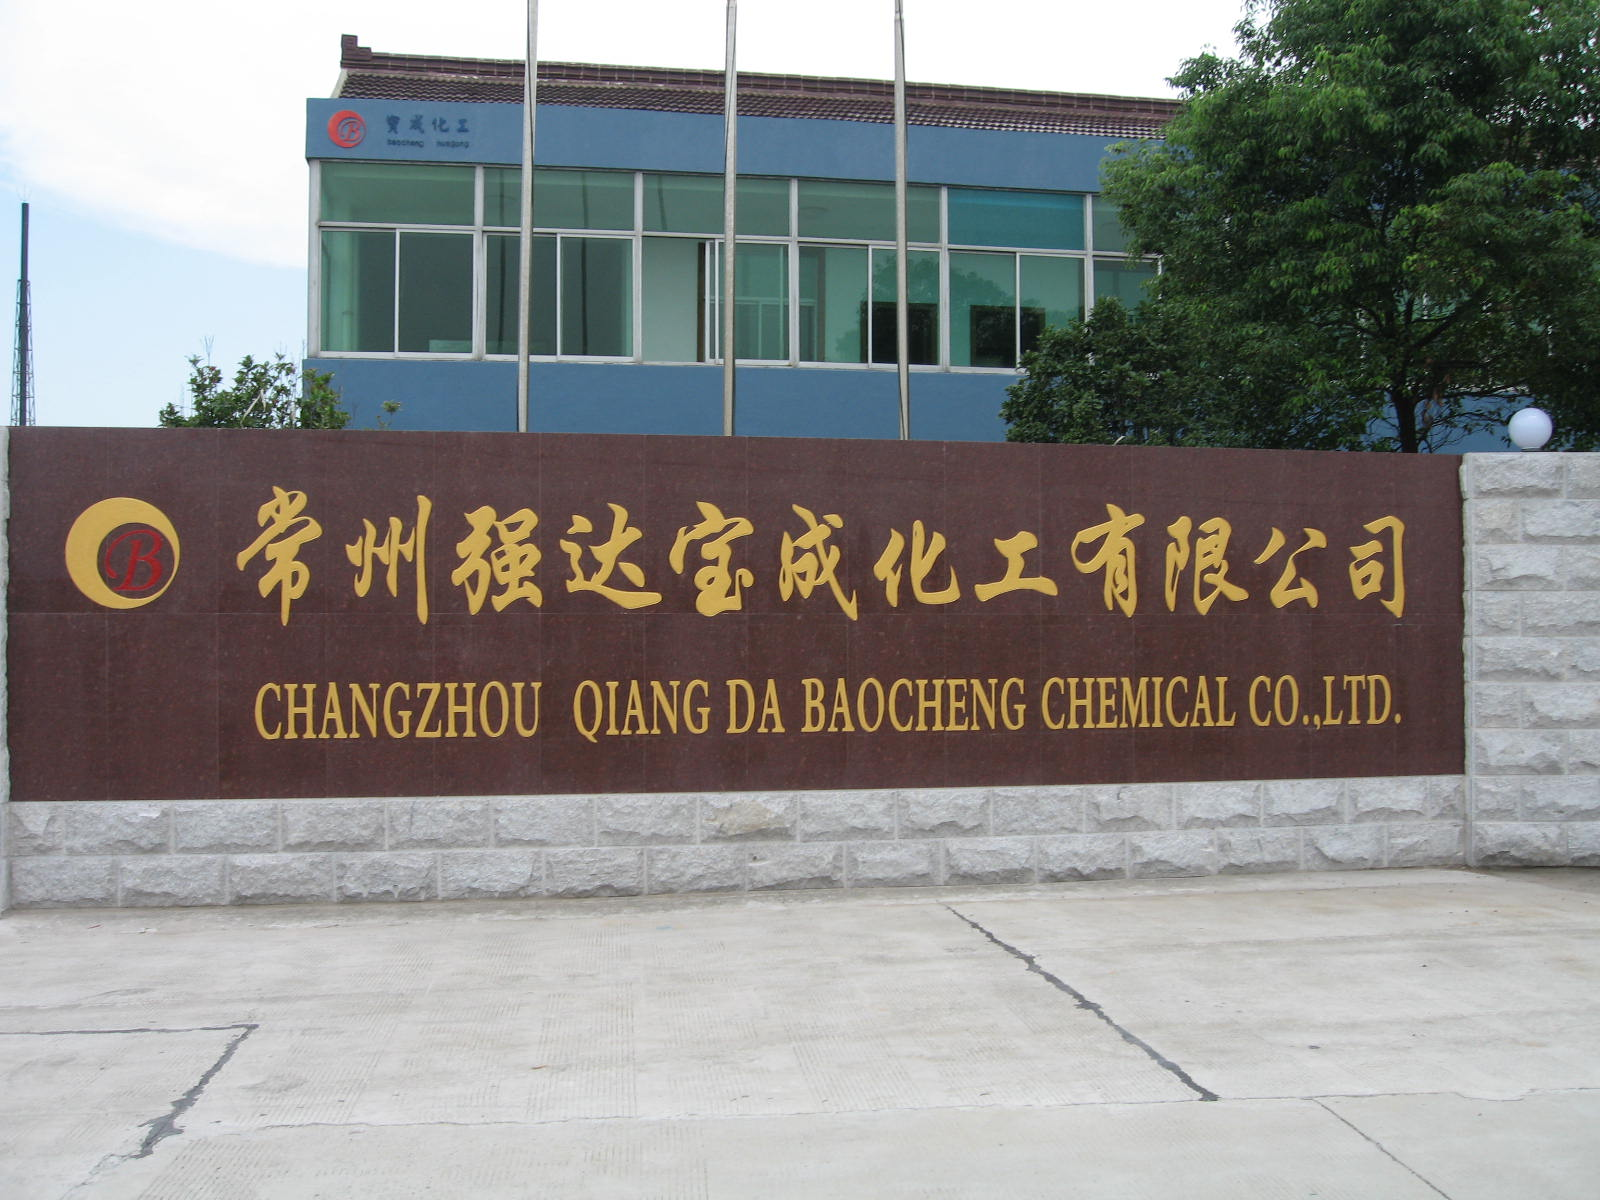 Changzhou Chontech Baocheng Chemical Co., Ltd.